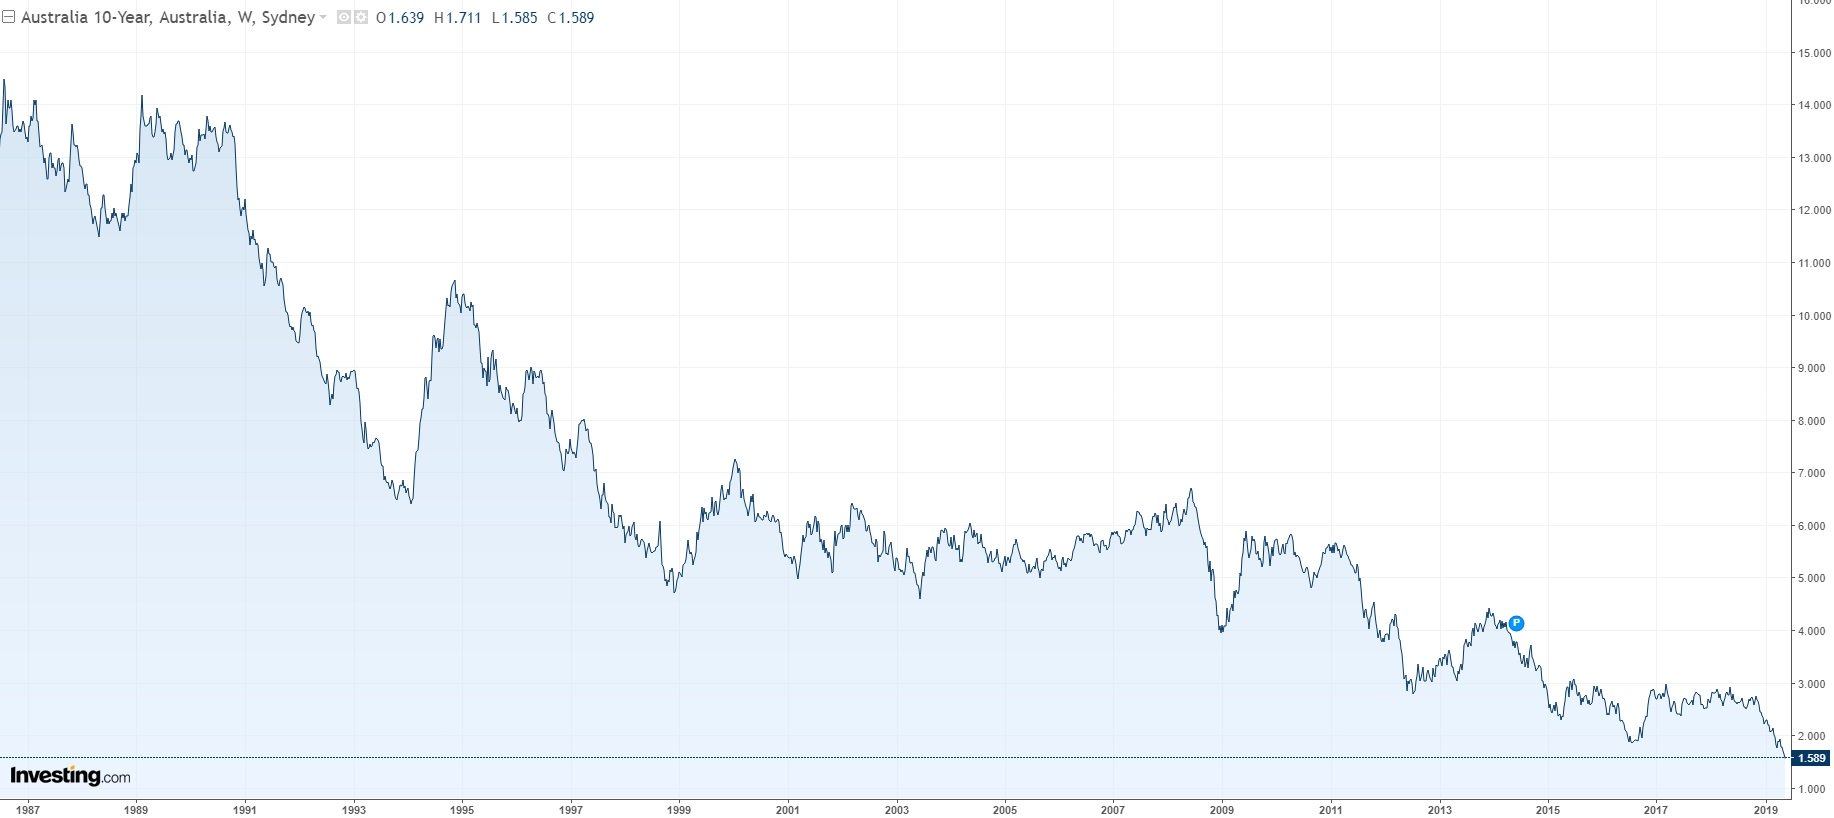 Australian 10-year bond yields fall to record lows, and there may ...